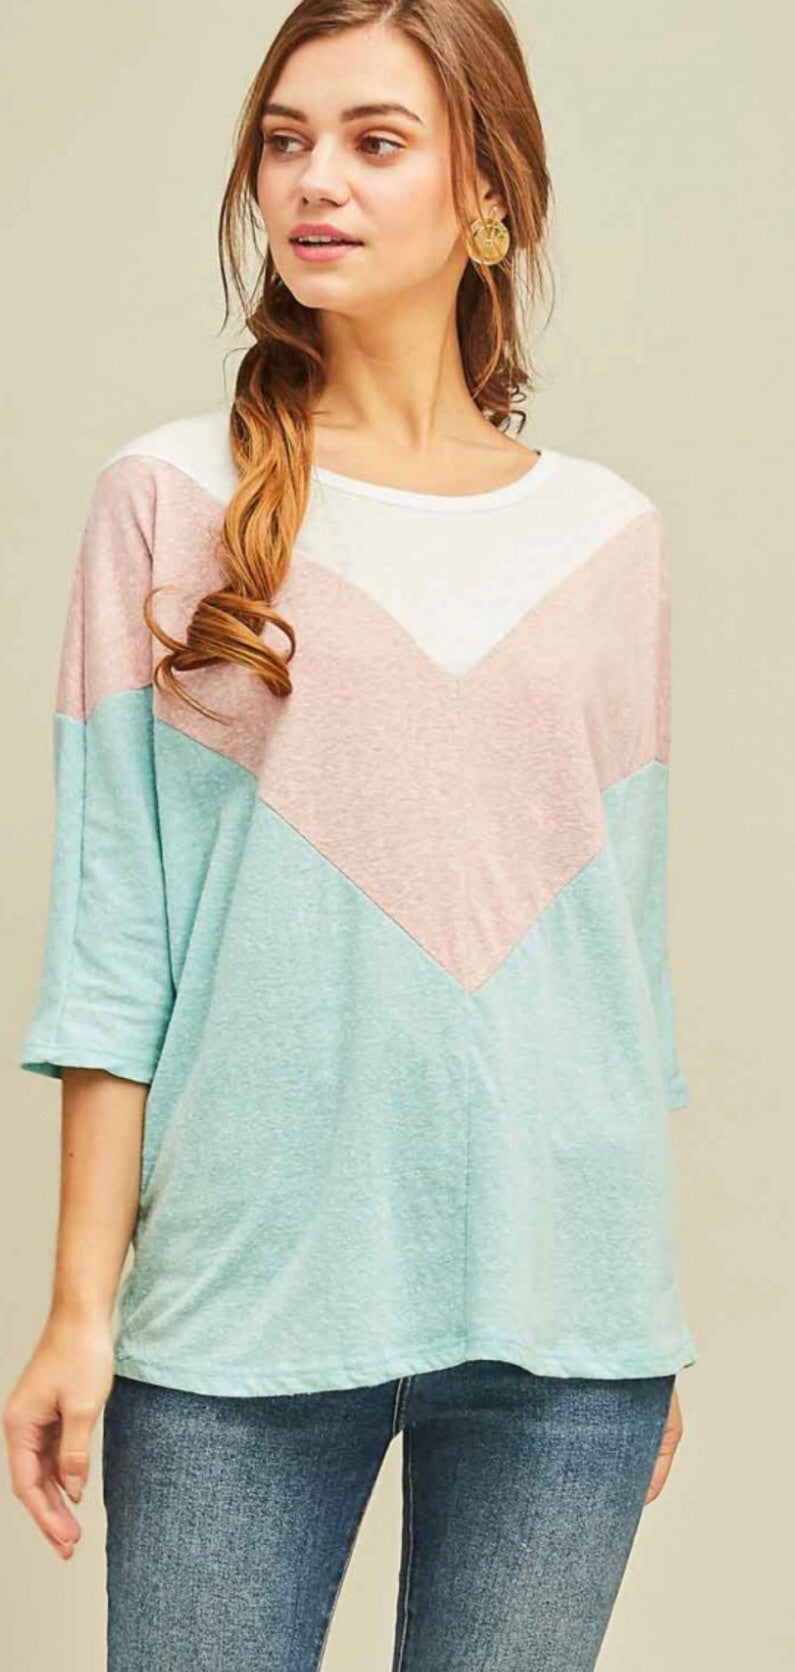 Chevron Scoop Neck Top